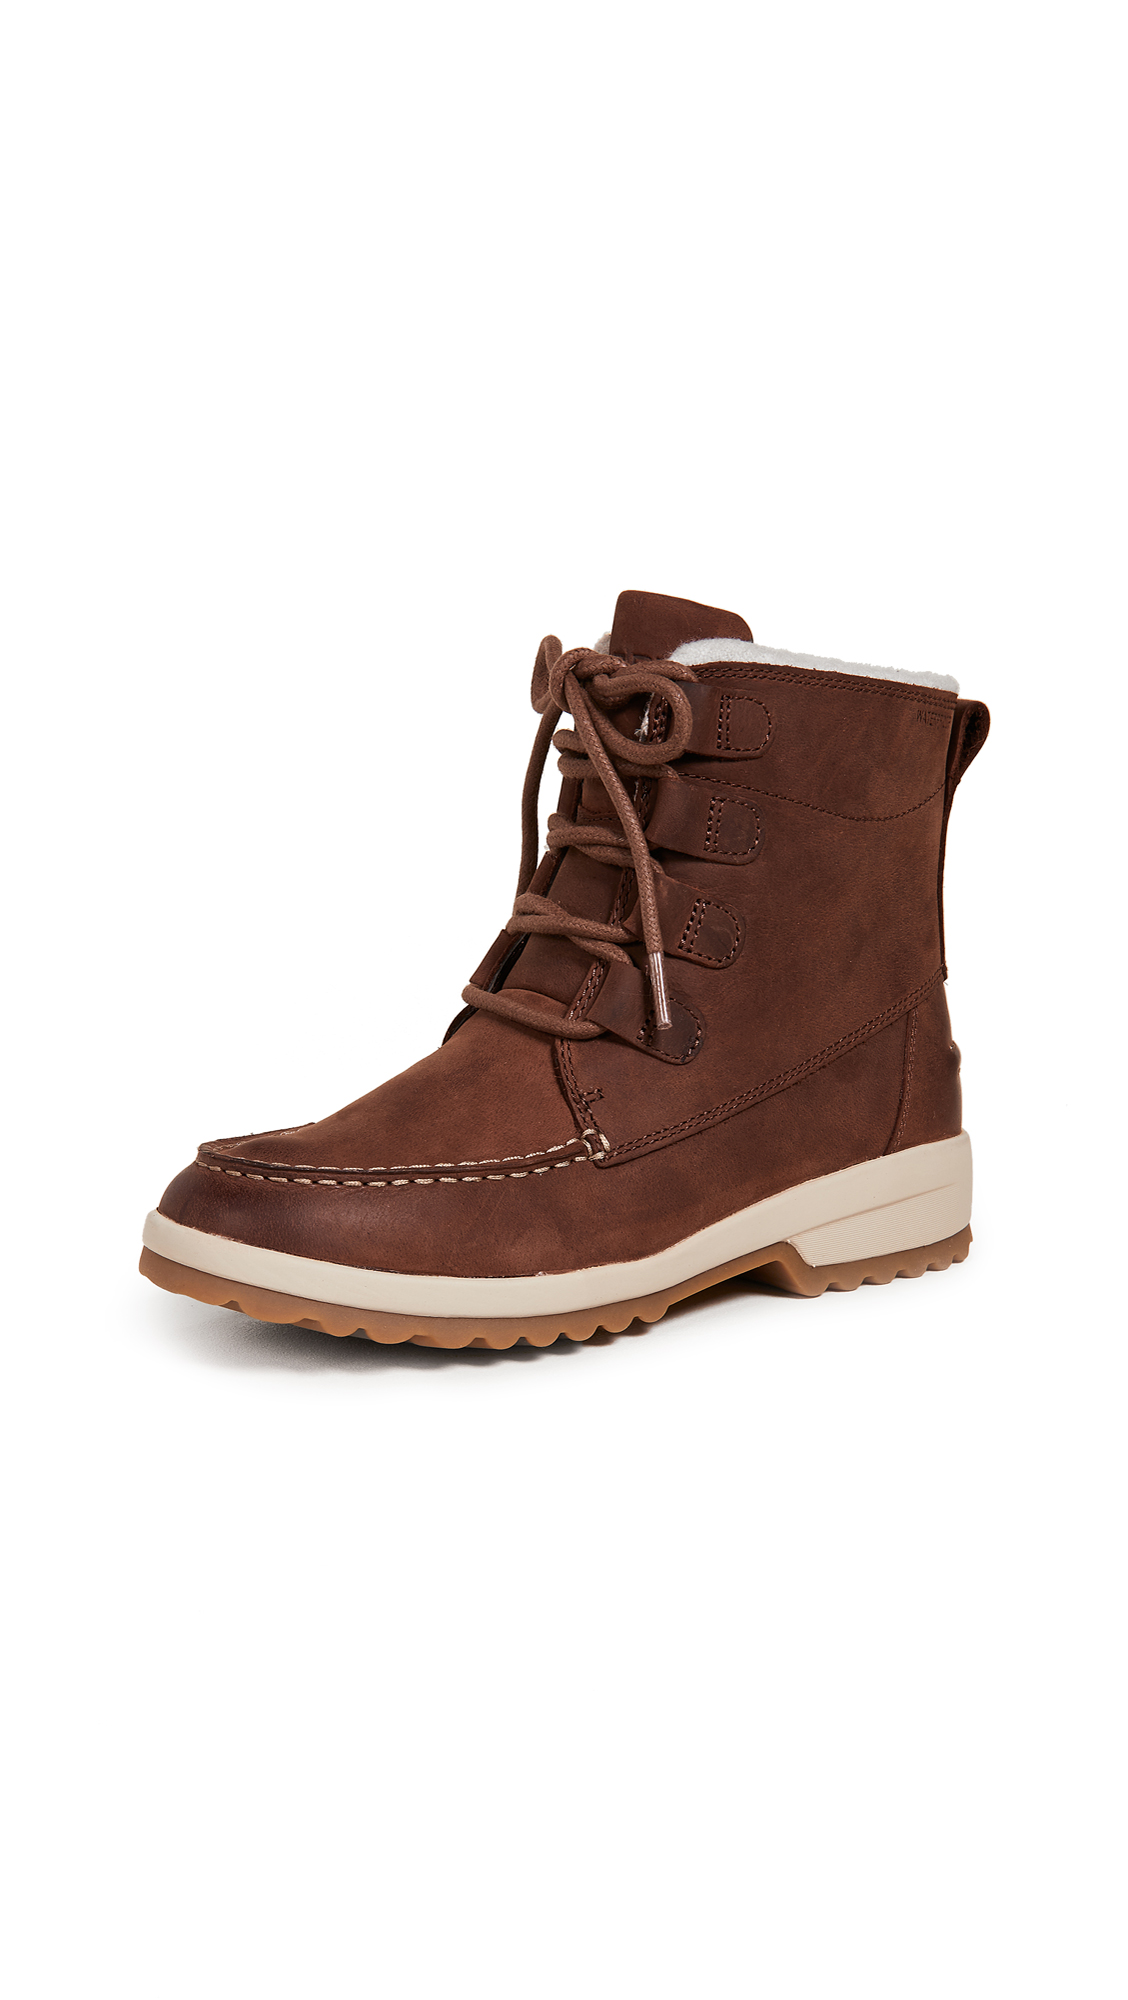 Sperry Maritime Cruz Boots - Rust